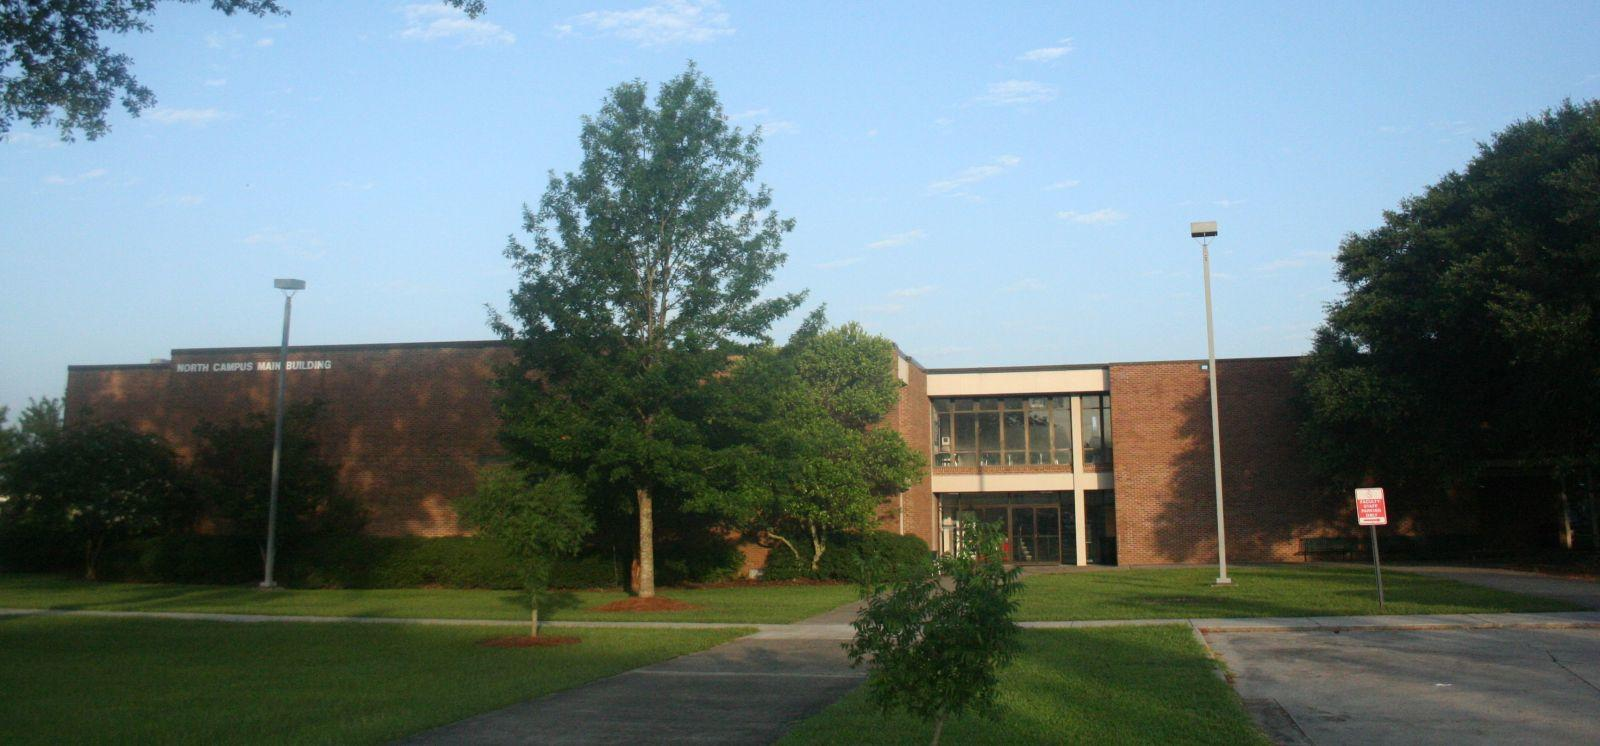 Southeastern Instructional Service Center building